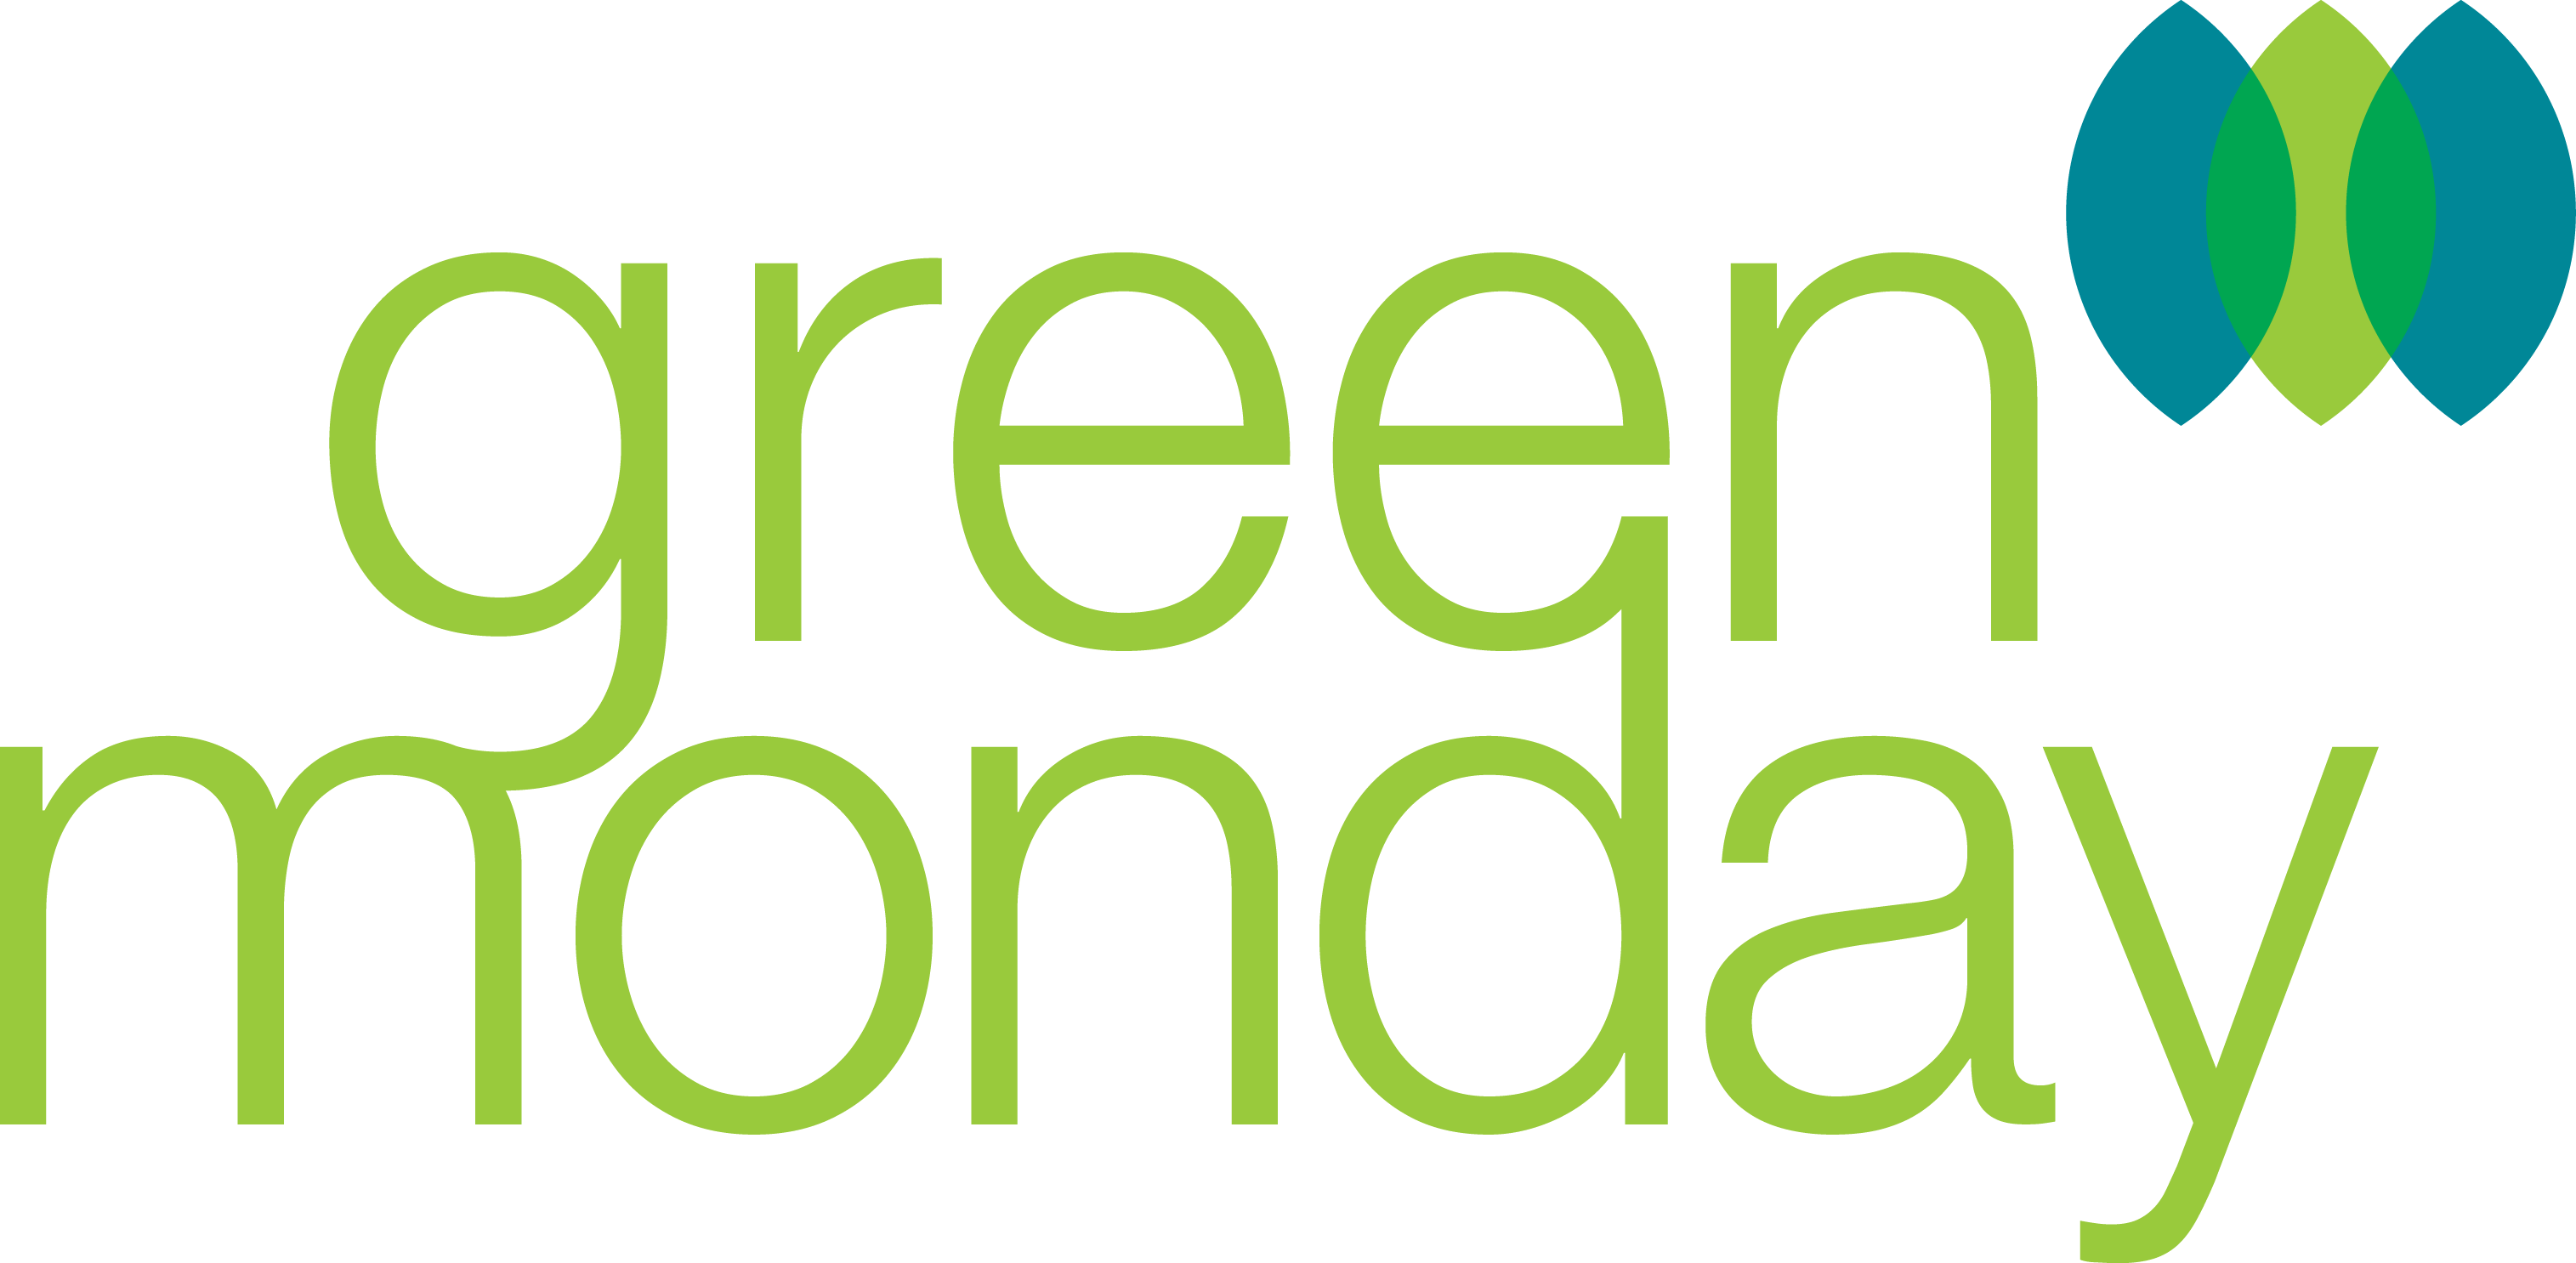 green_monday_logo.png